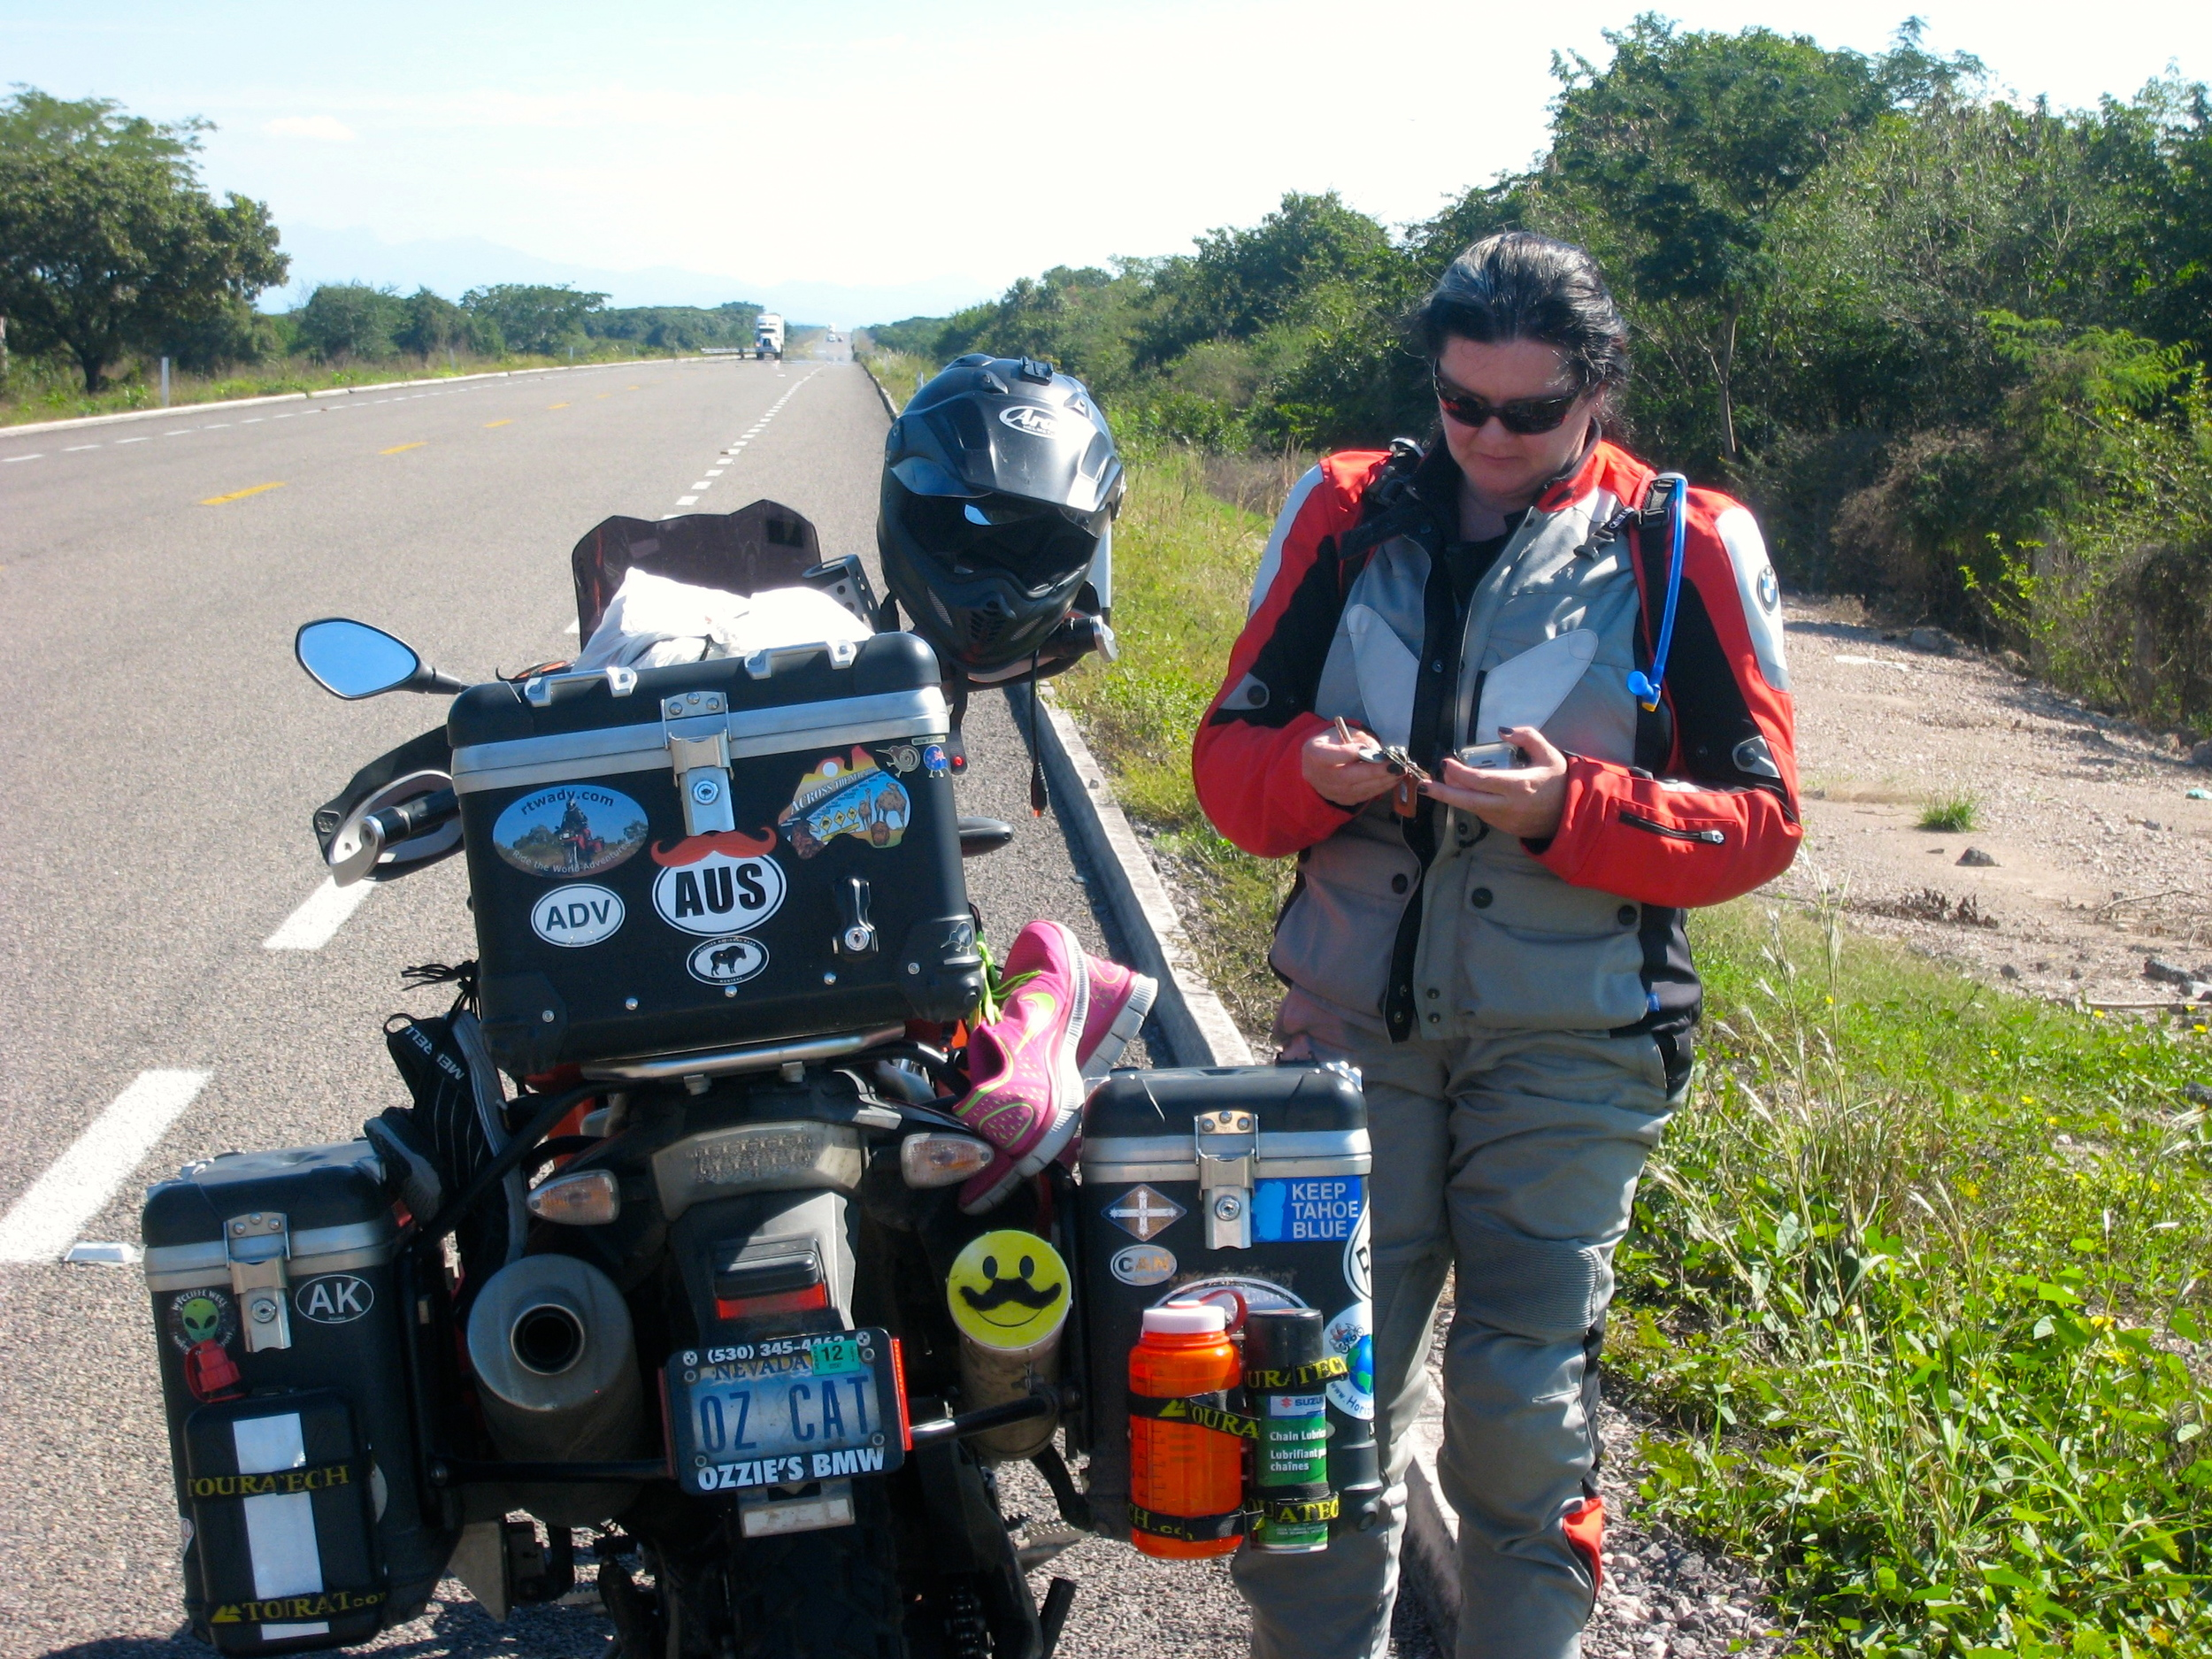 Pulling over to check to get the map out and check on the location of the San Blas exit